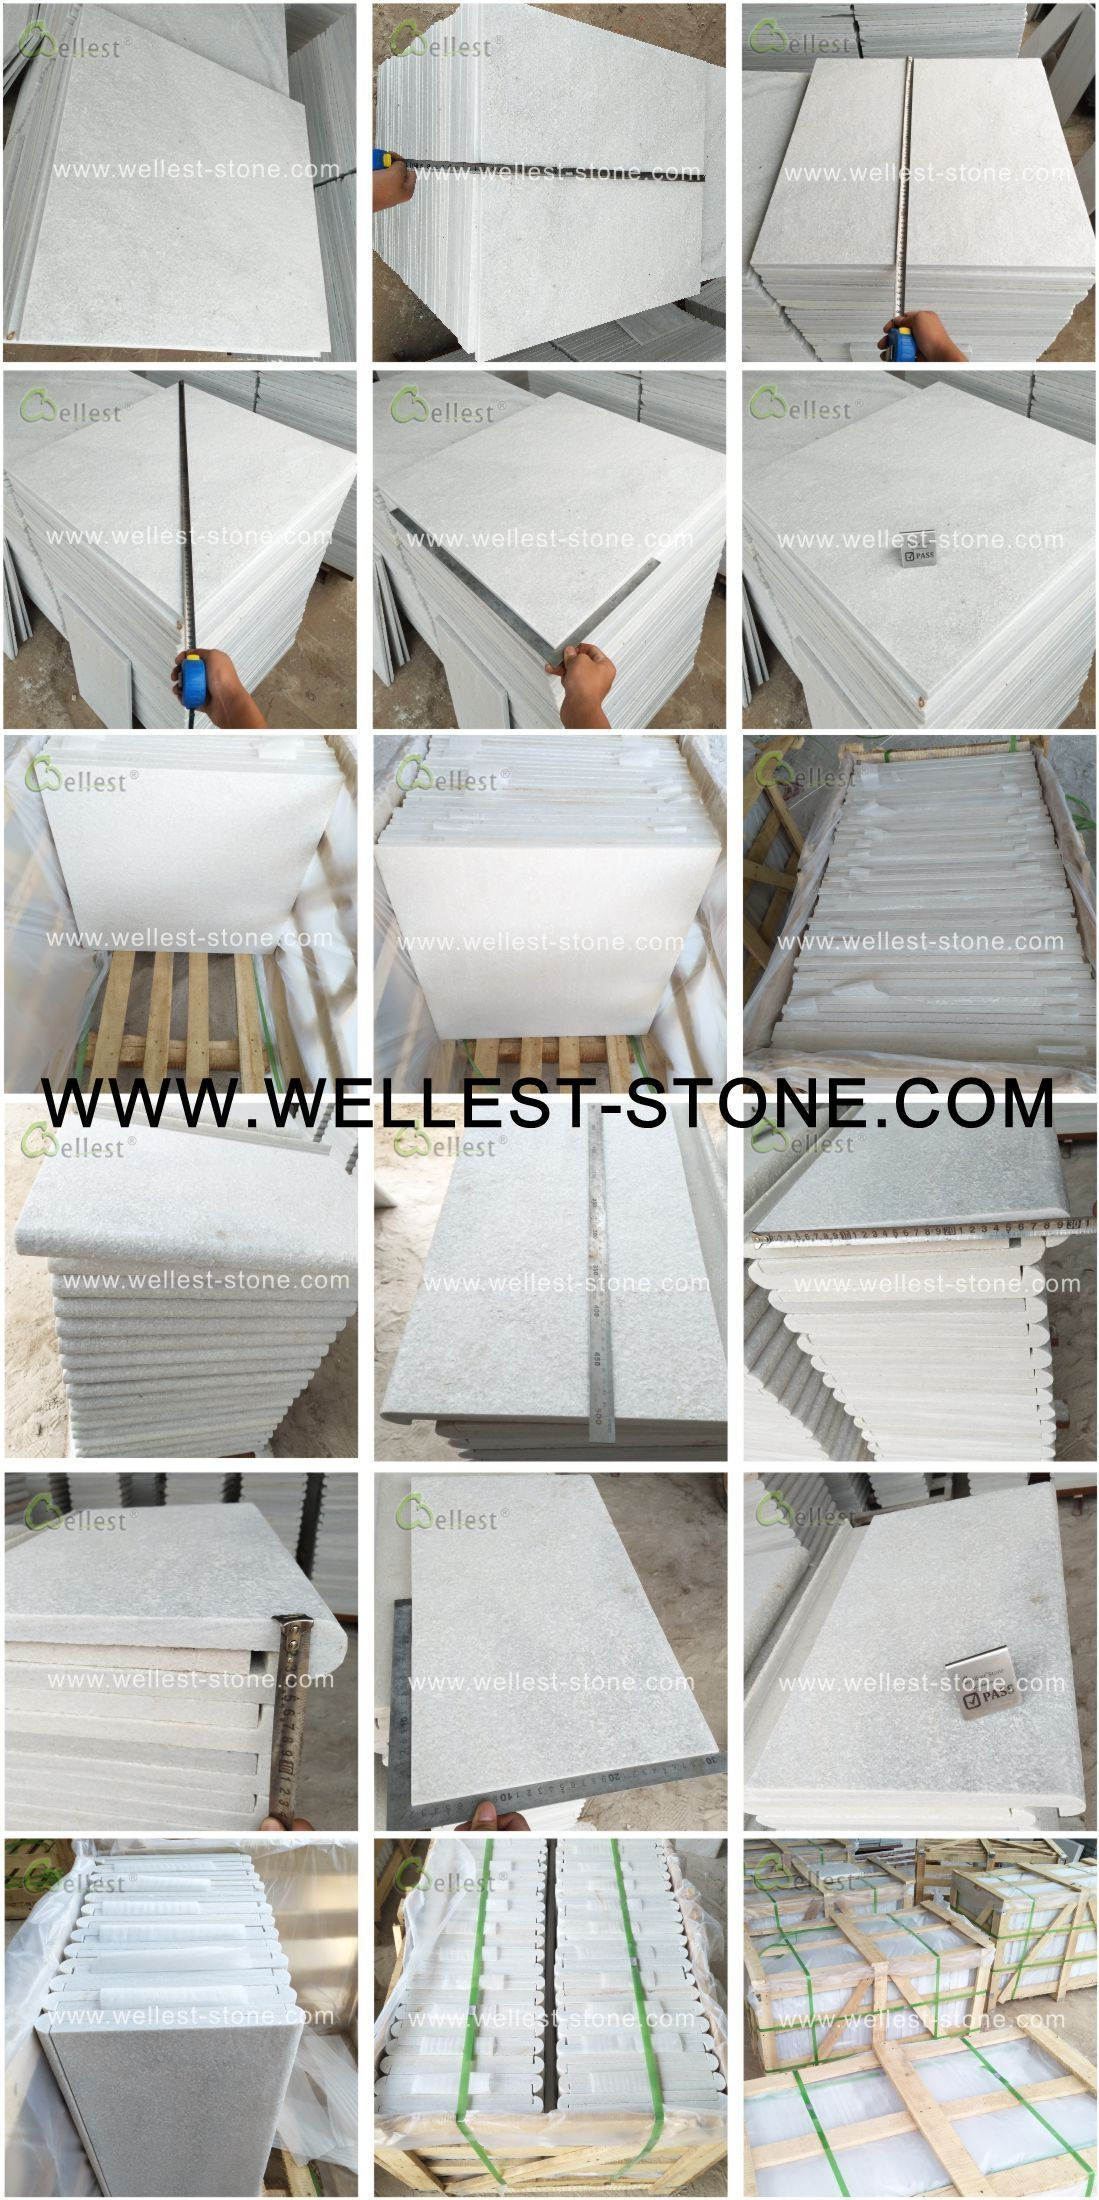 White Quartzite Coping and Tile 2017-07-13.jpg